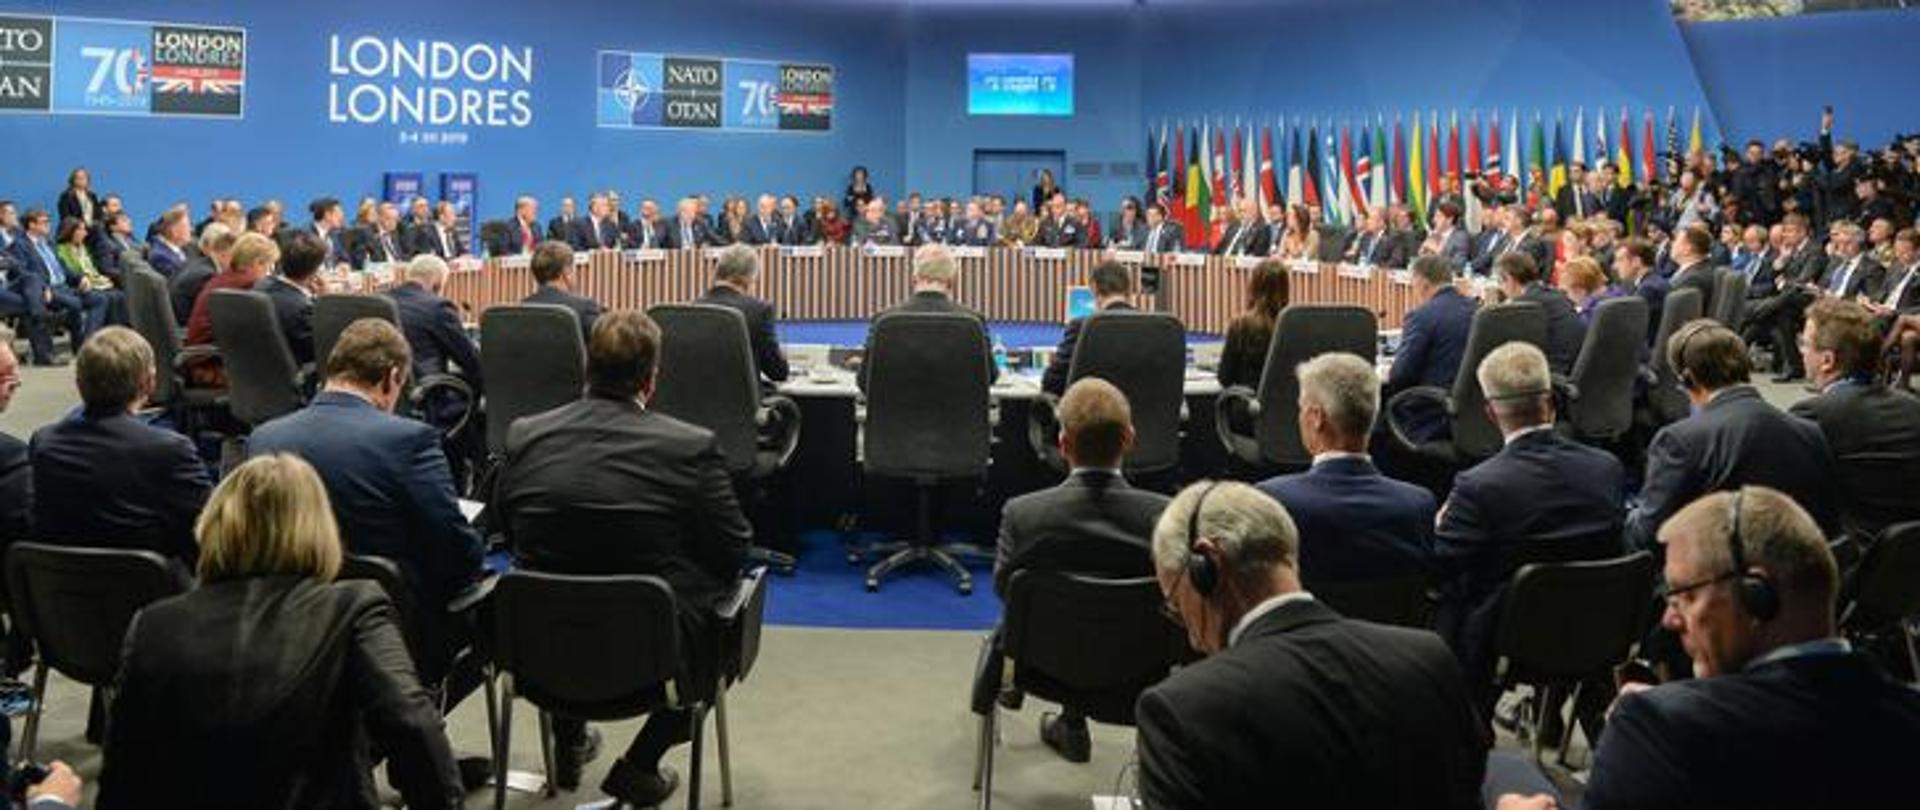 North Atlantic Council session with the participation of presidents and heads of government in London.